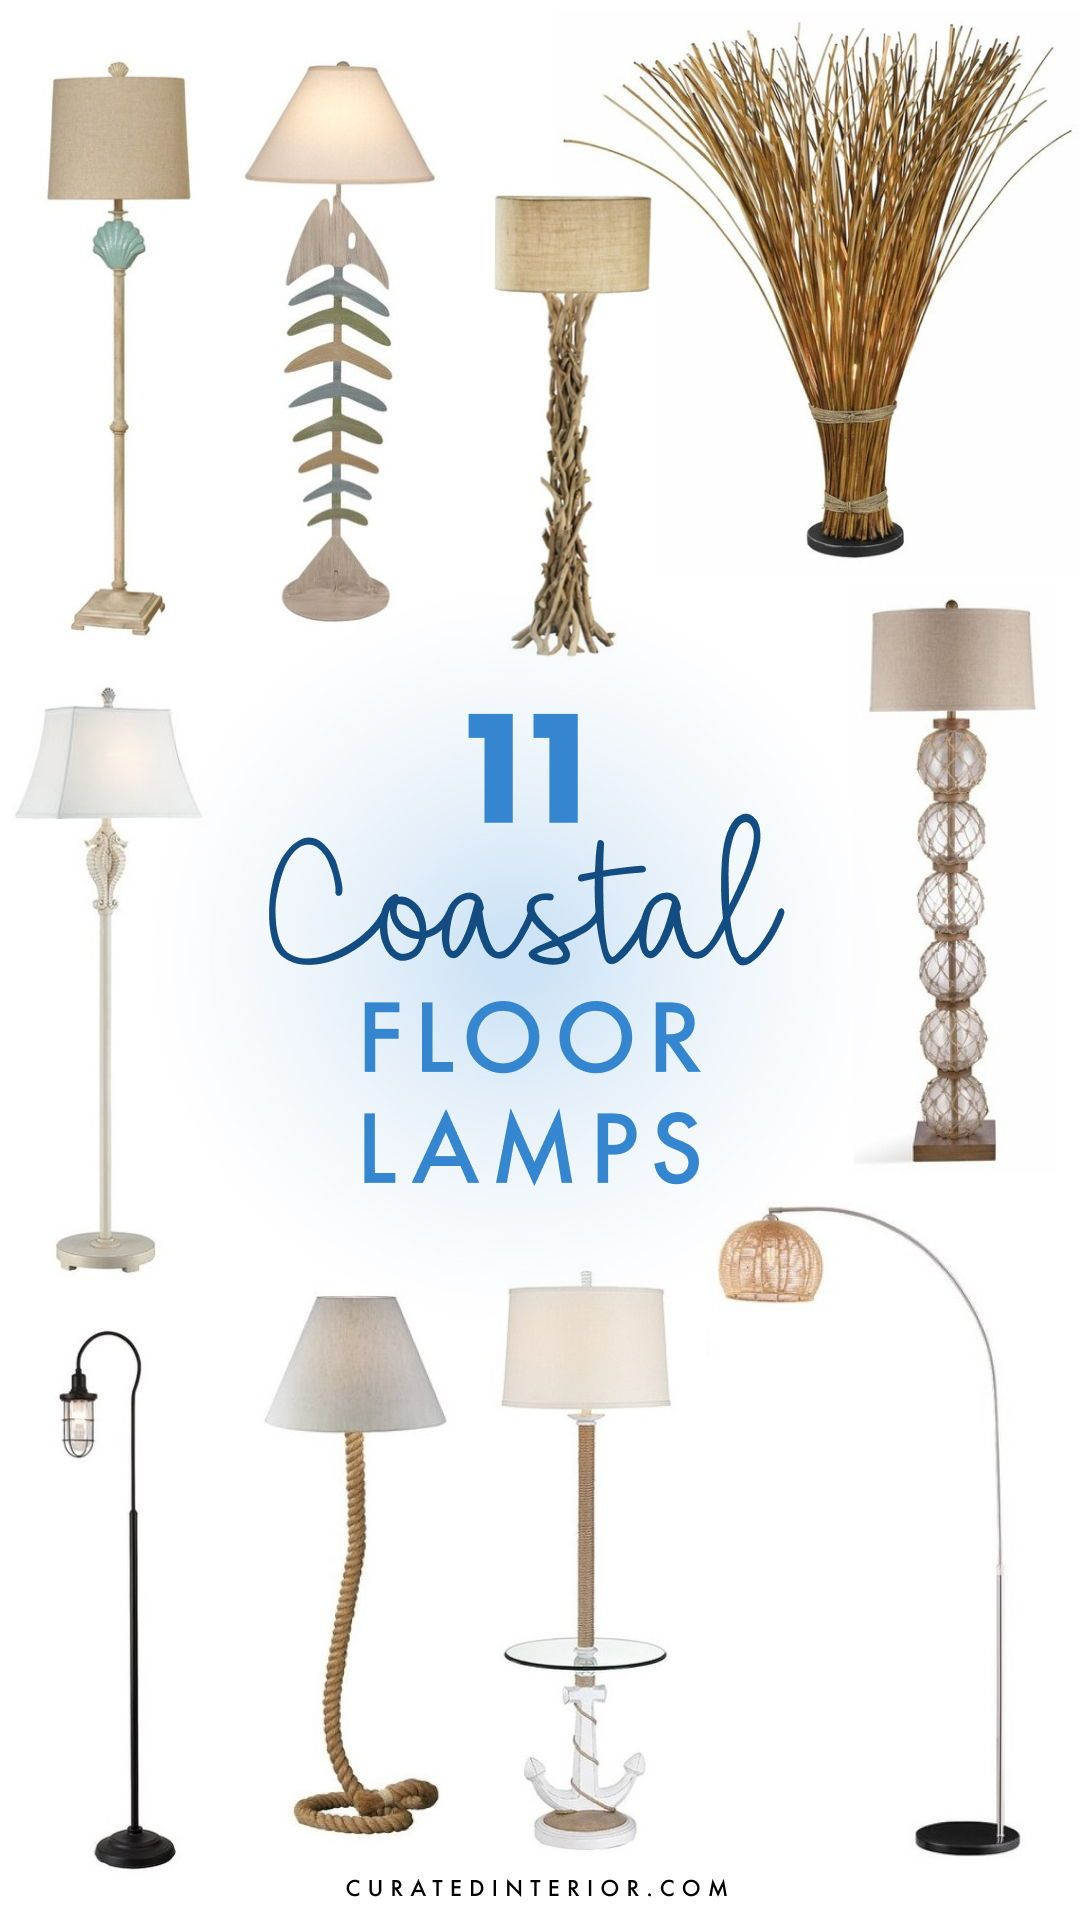 11 Coastal Floor Lamps For Your Beach Home Coastal Floor Lamps Floor Lamp Nautical Floor Lamps